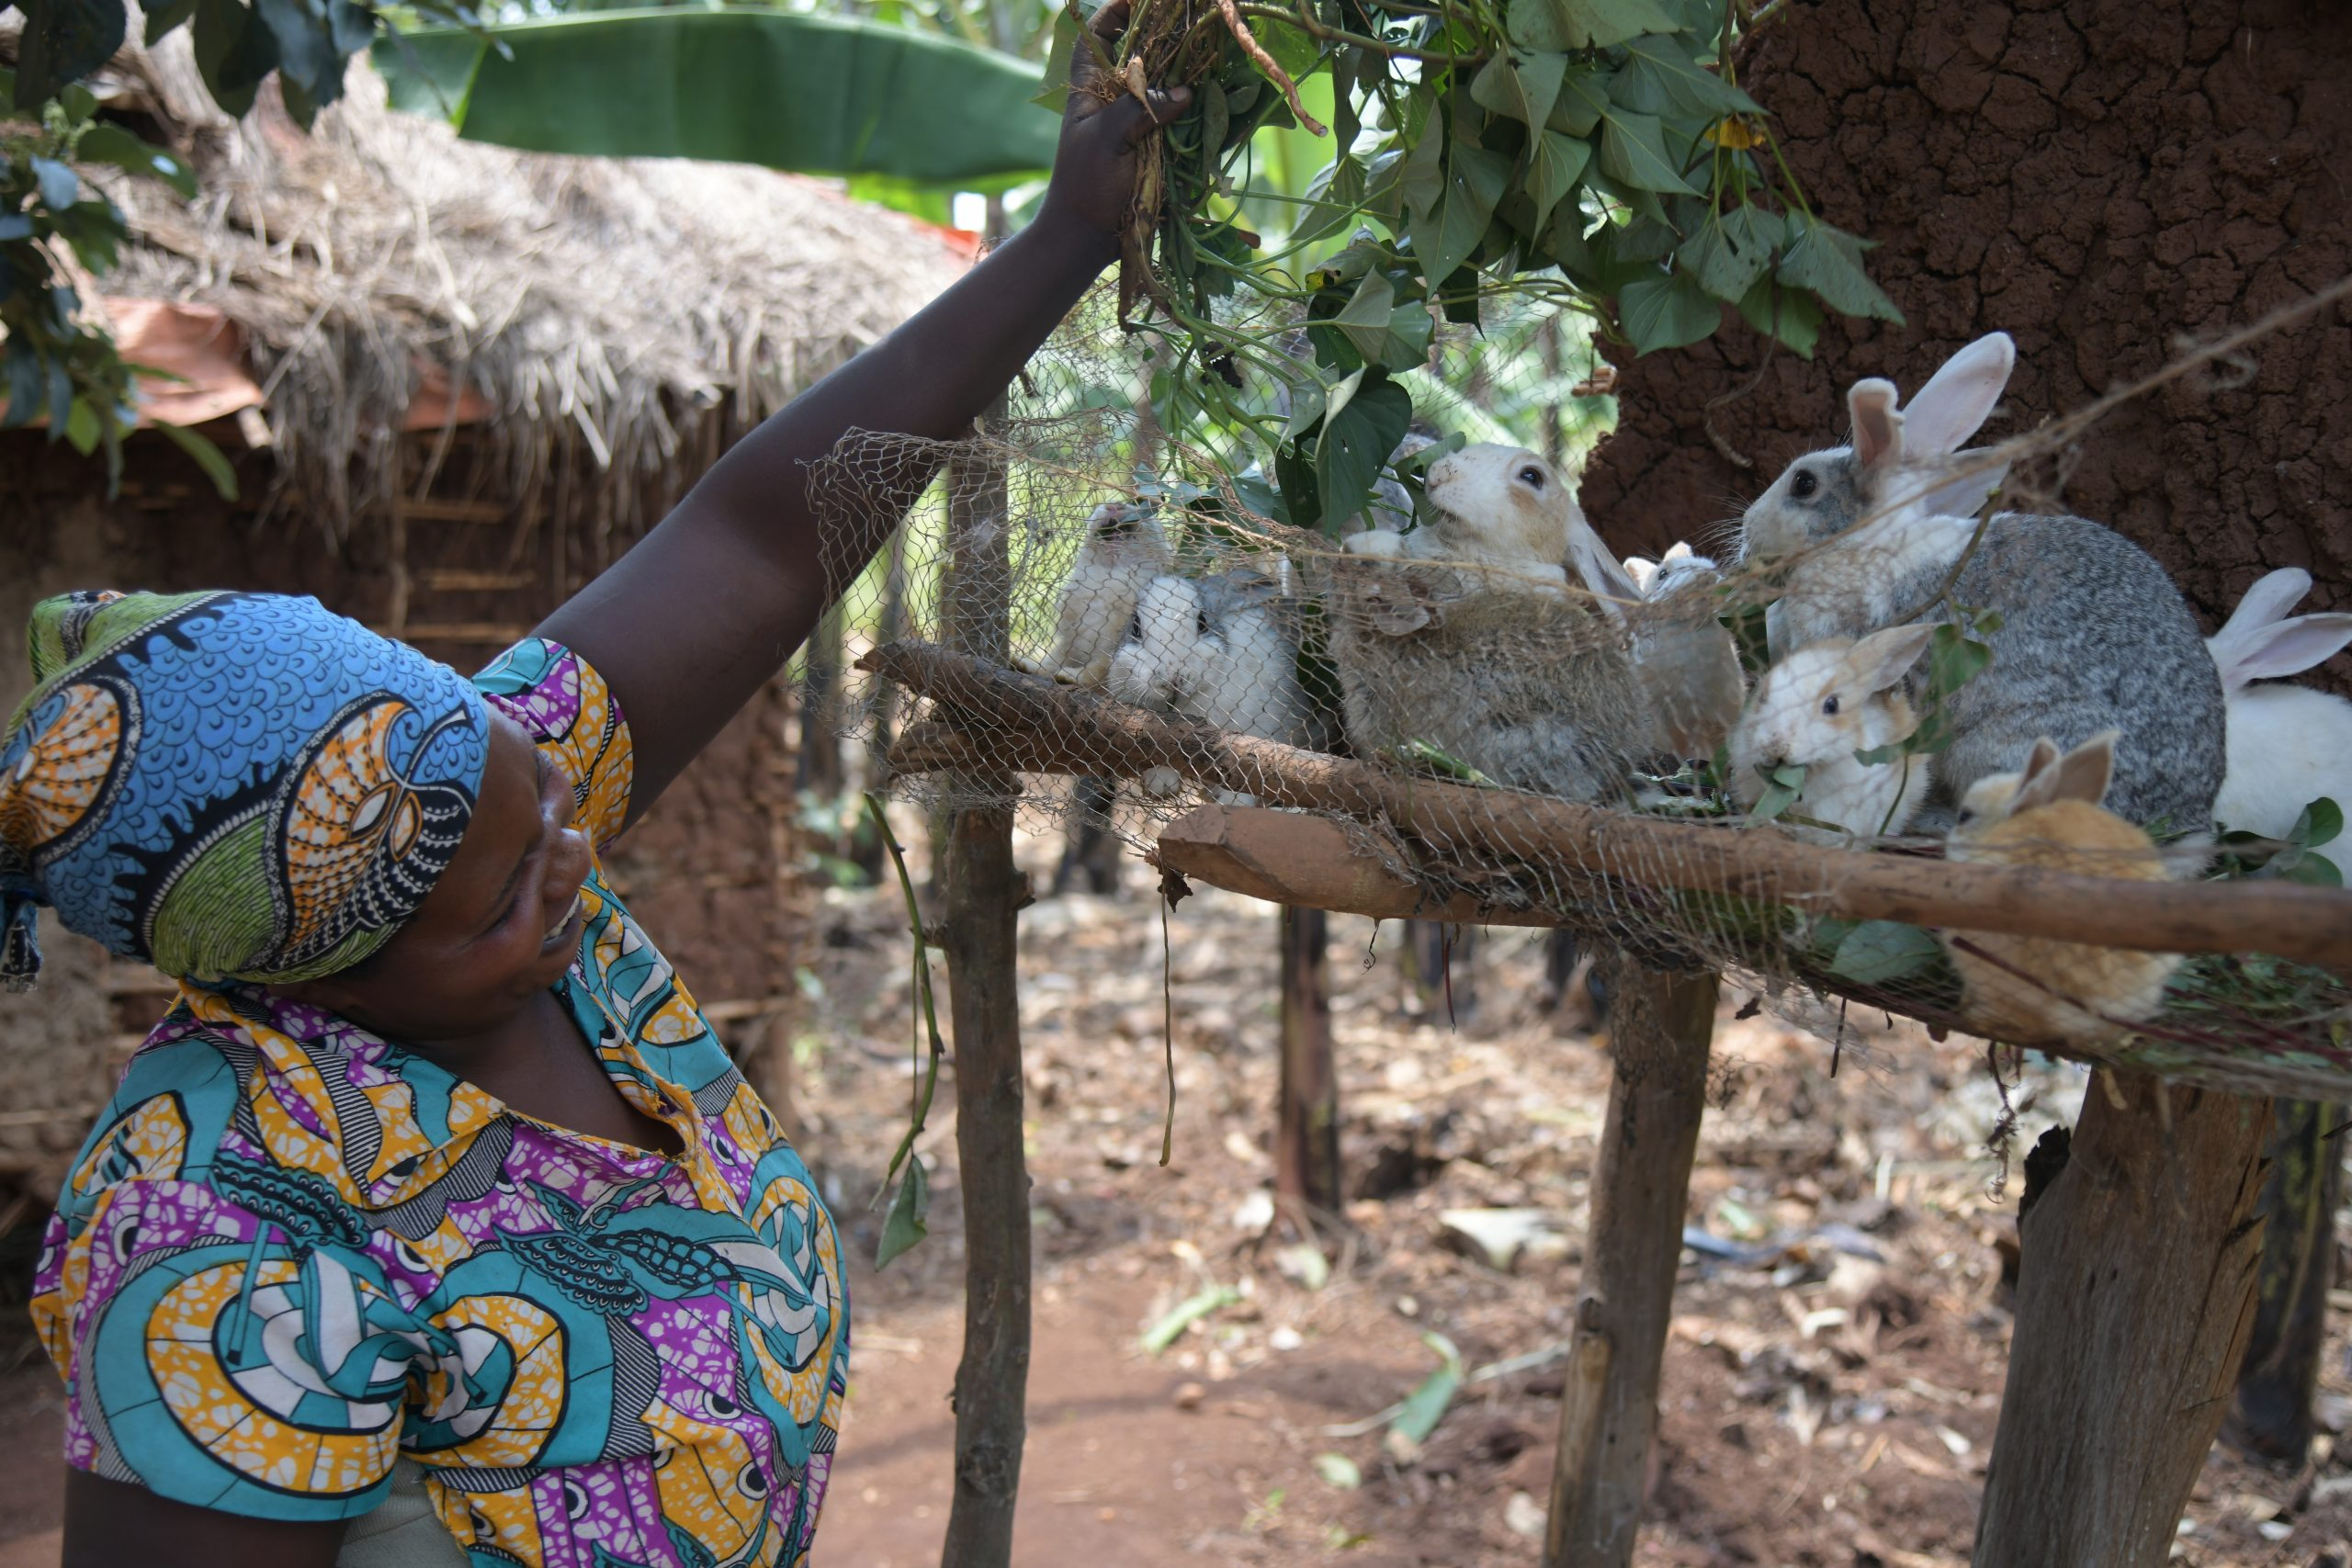 A participant with her rabbits which she sells monthly for an income